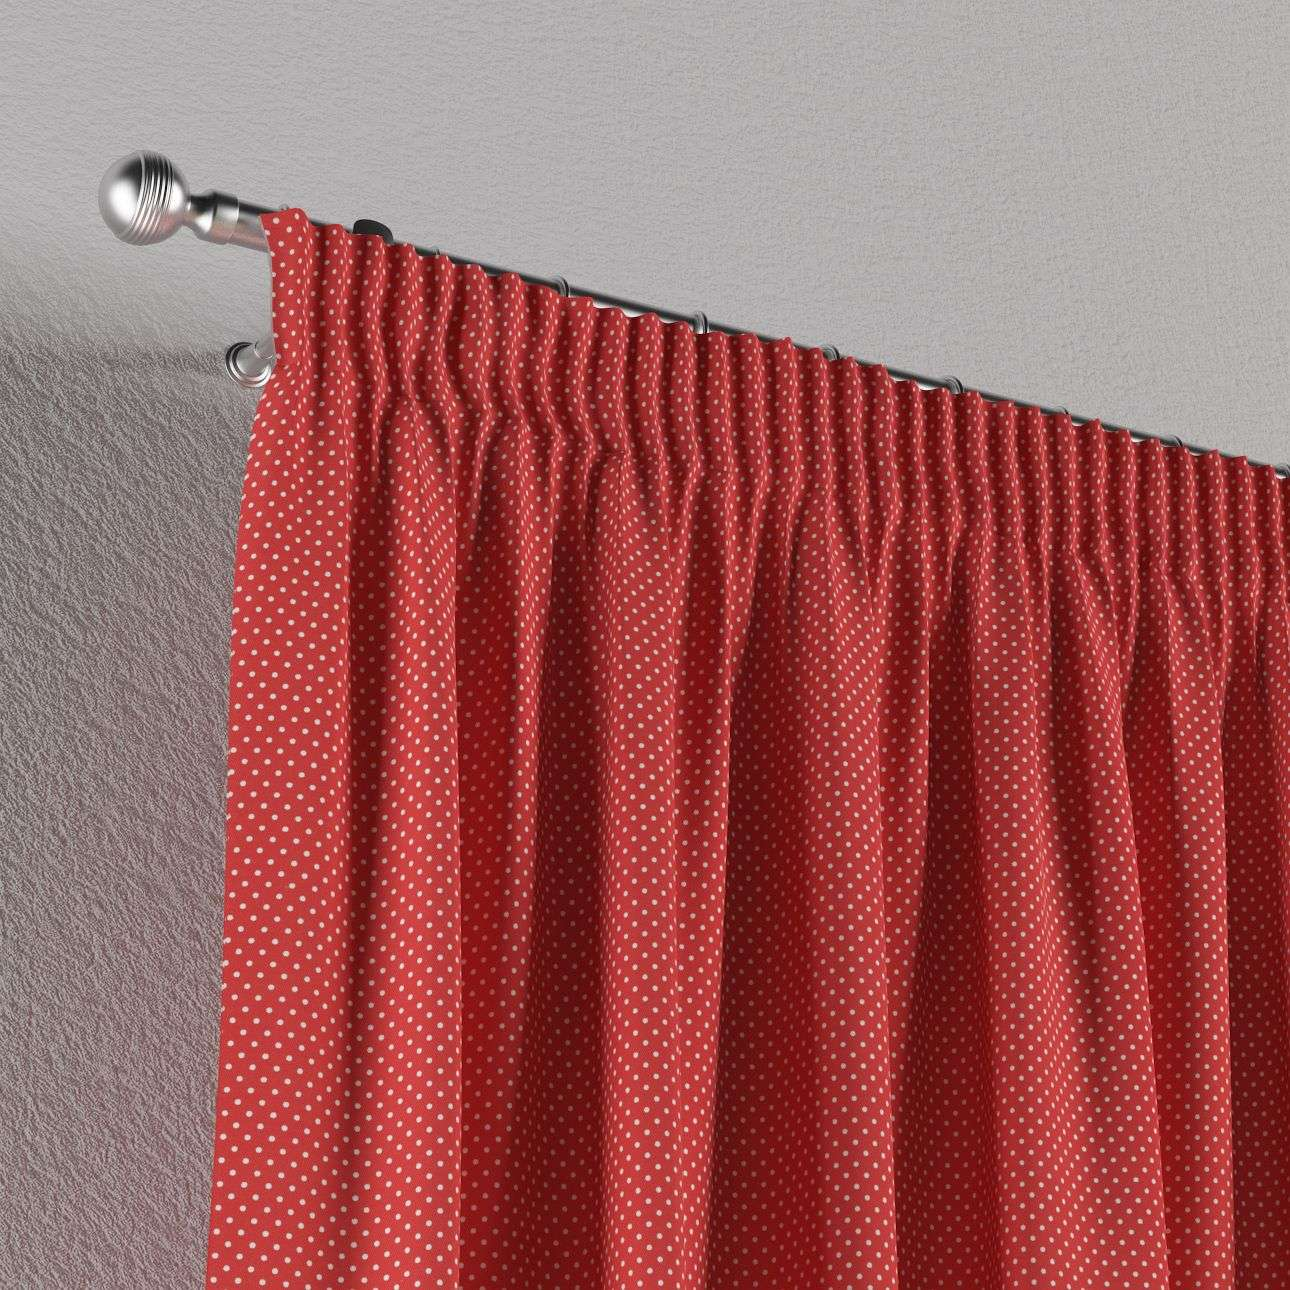 Pencil pleat curtains 130 x 260 cm (51 x 102 inch) in collection Ashley, fabric: 137-50